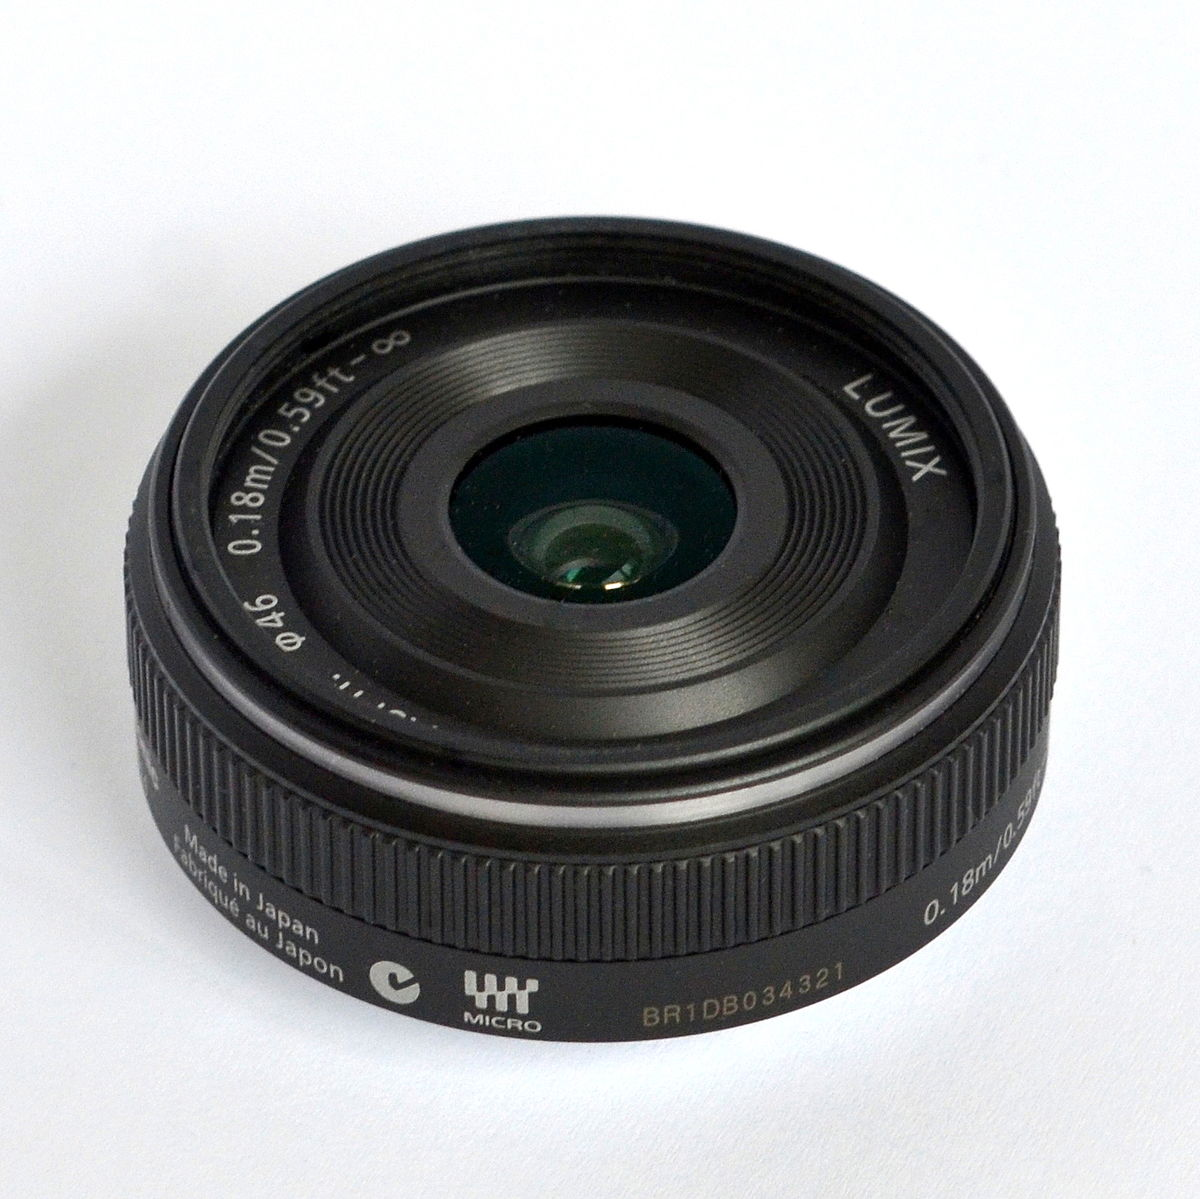 Panasonic Lumix G 14mm lens - Wikipedia